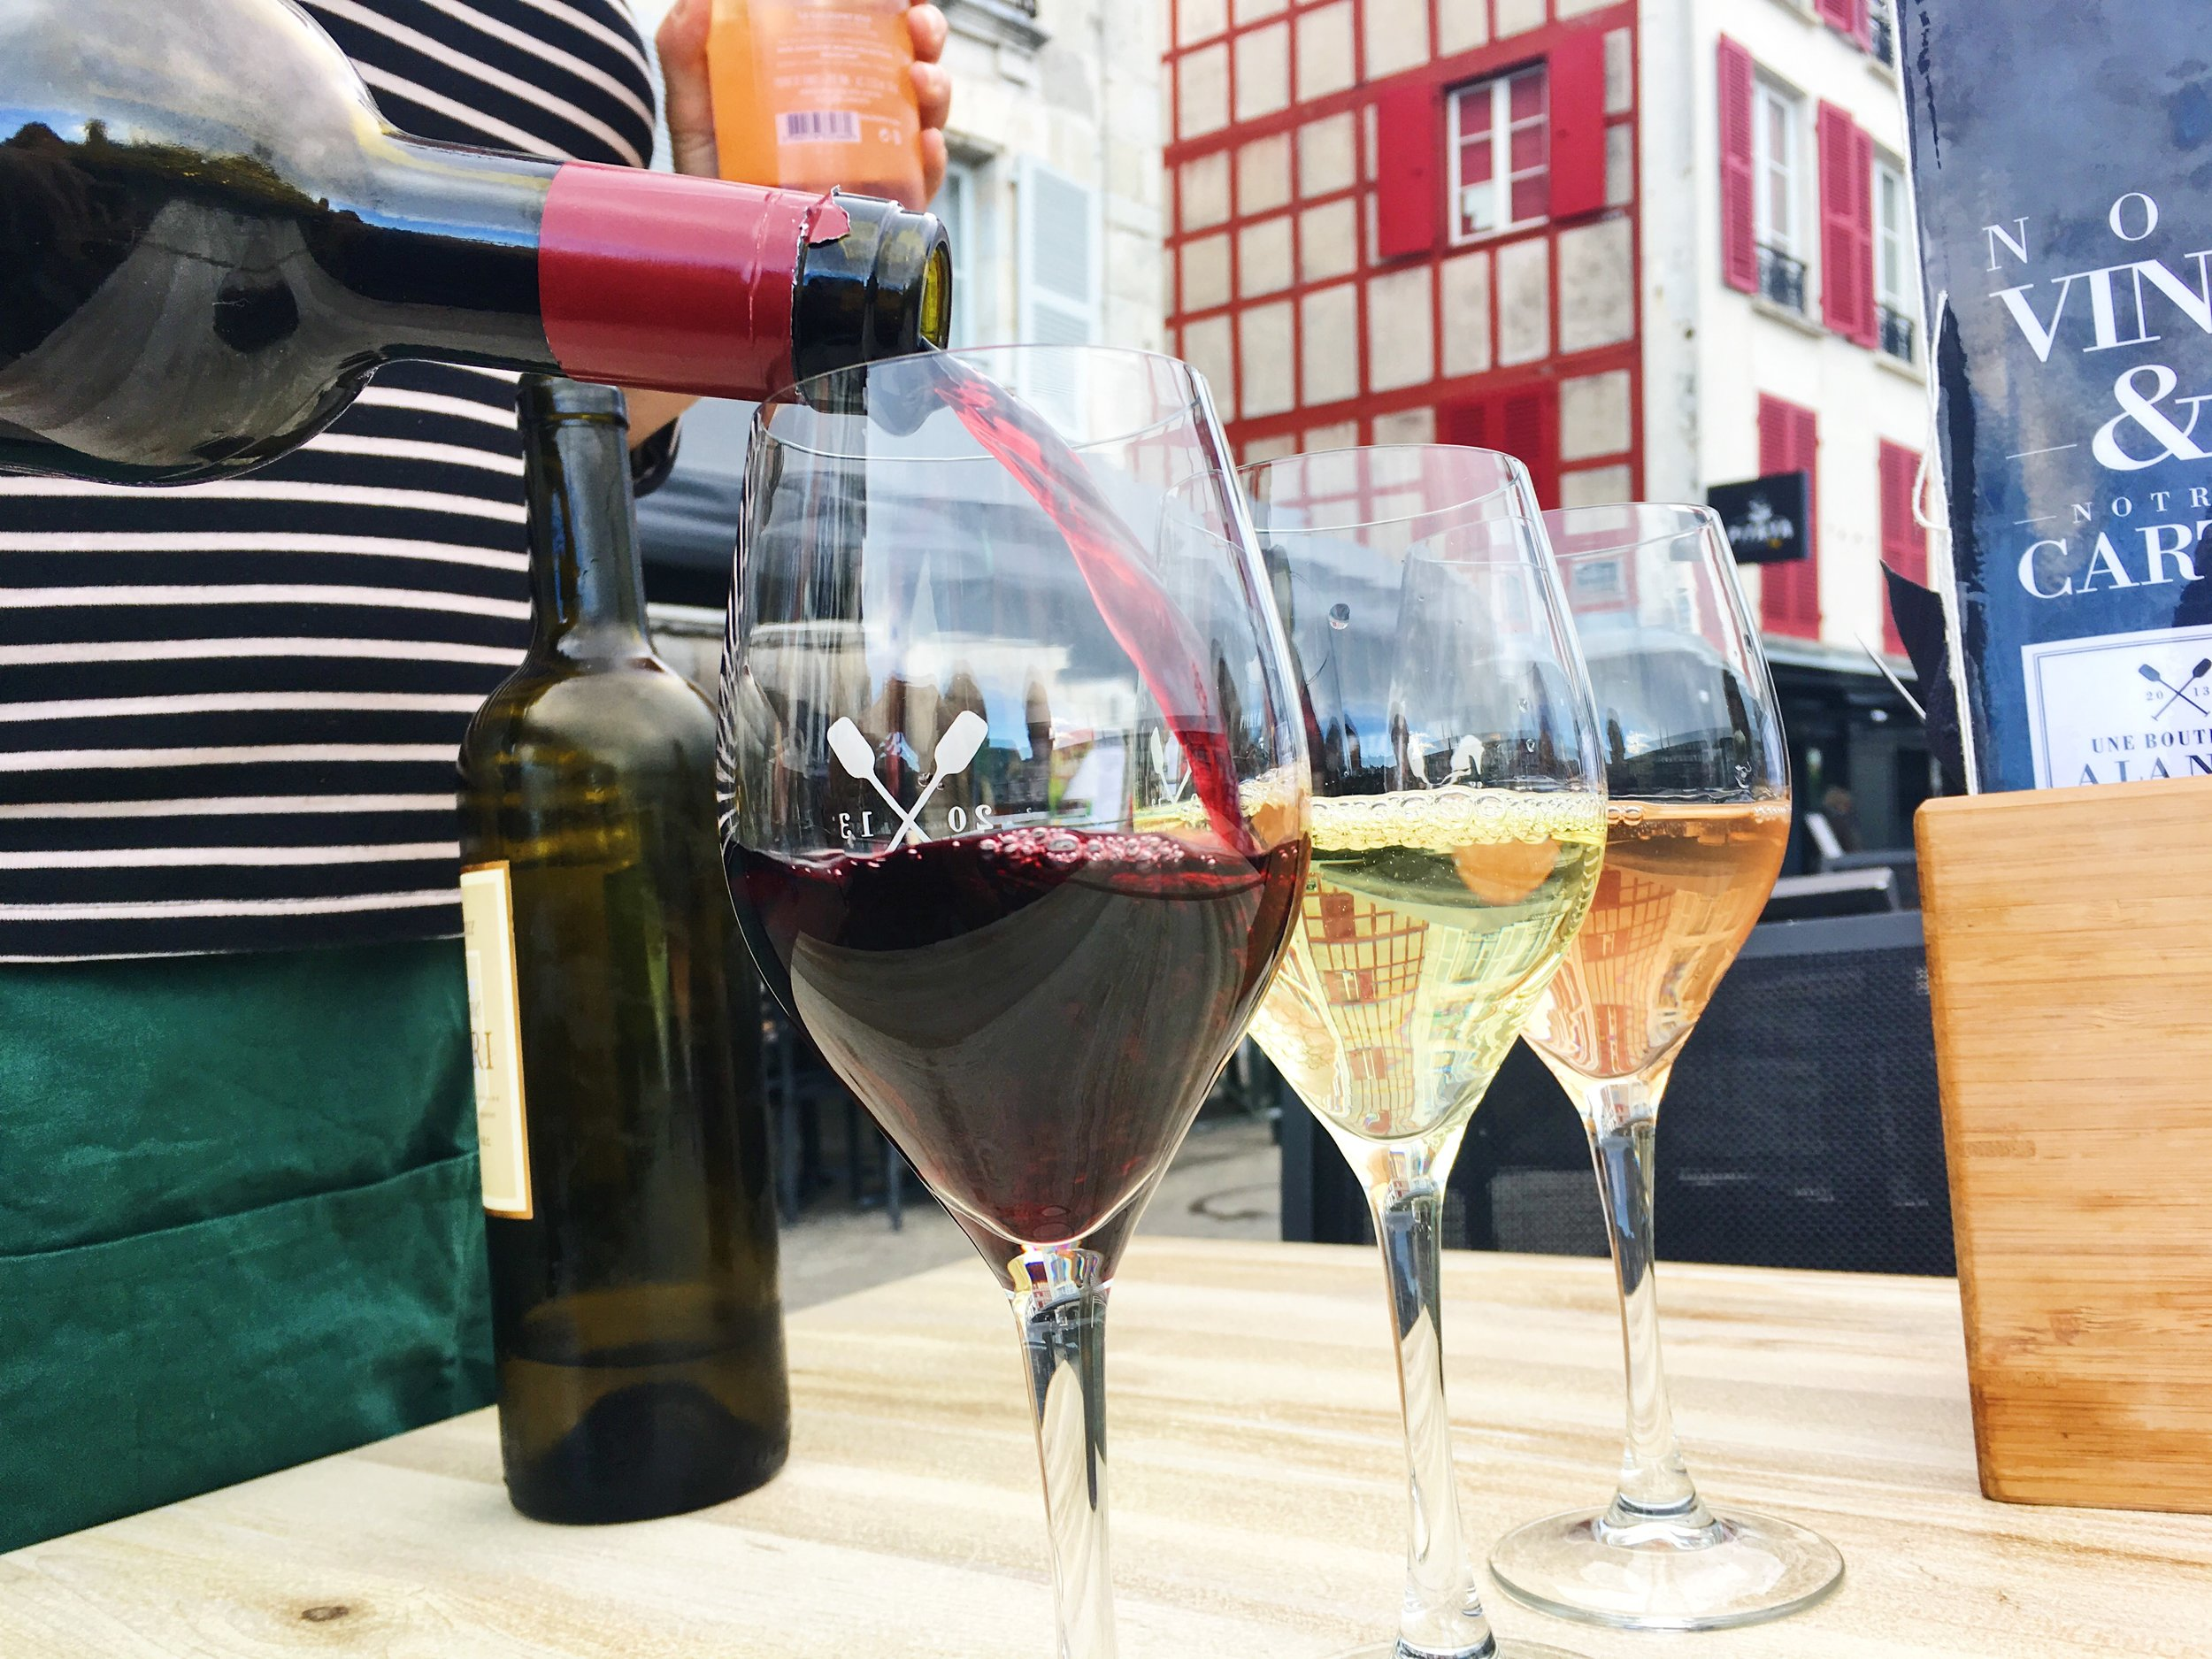 Sharing wine with new friends in Bayonne, France